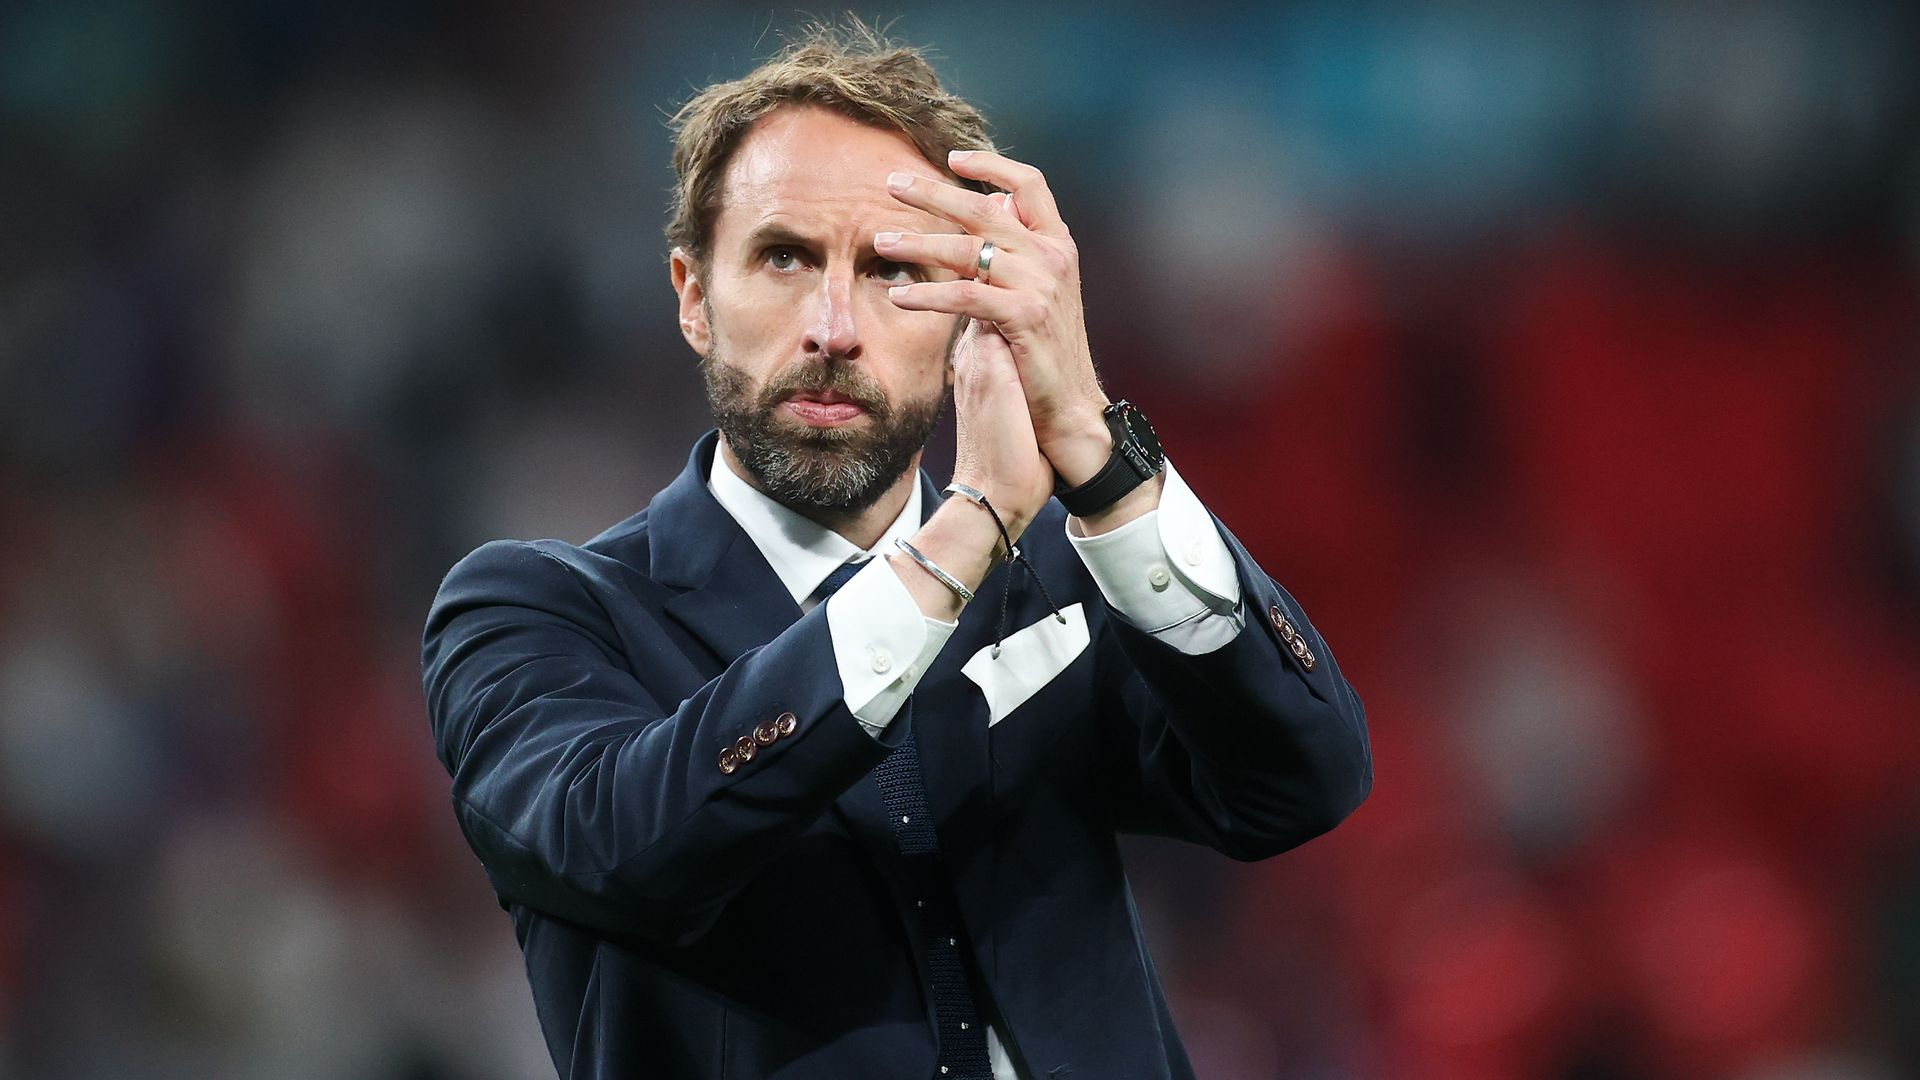 Gareth Southgate applauds fans after the England's penalty defeat at the hands of Italy - Credit: Getty Images